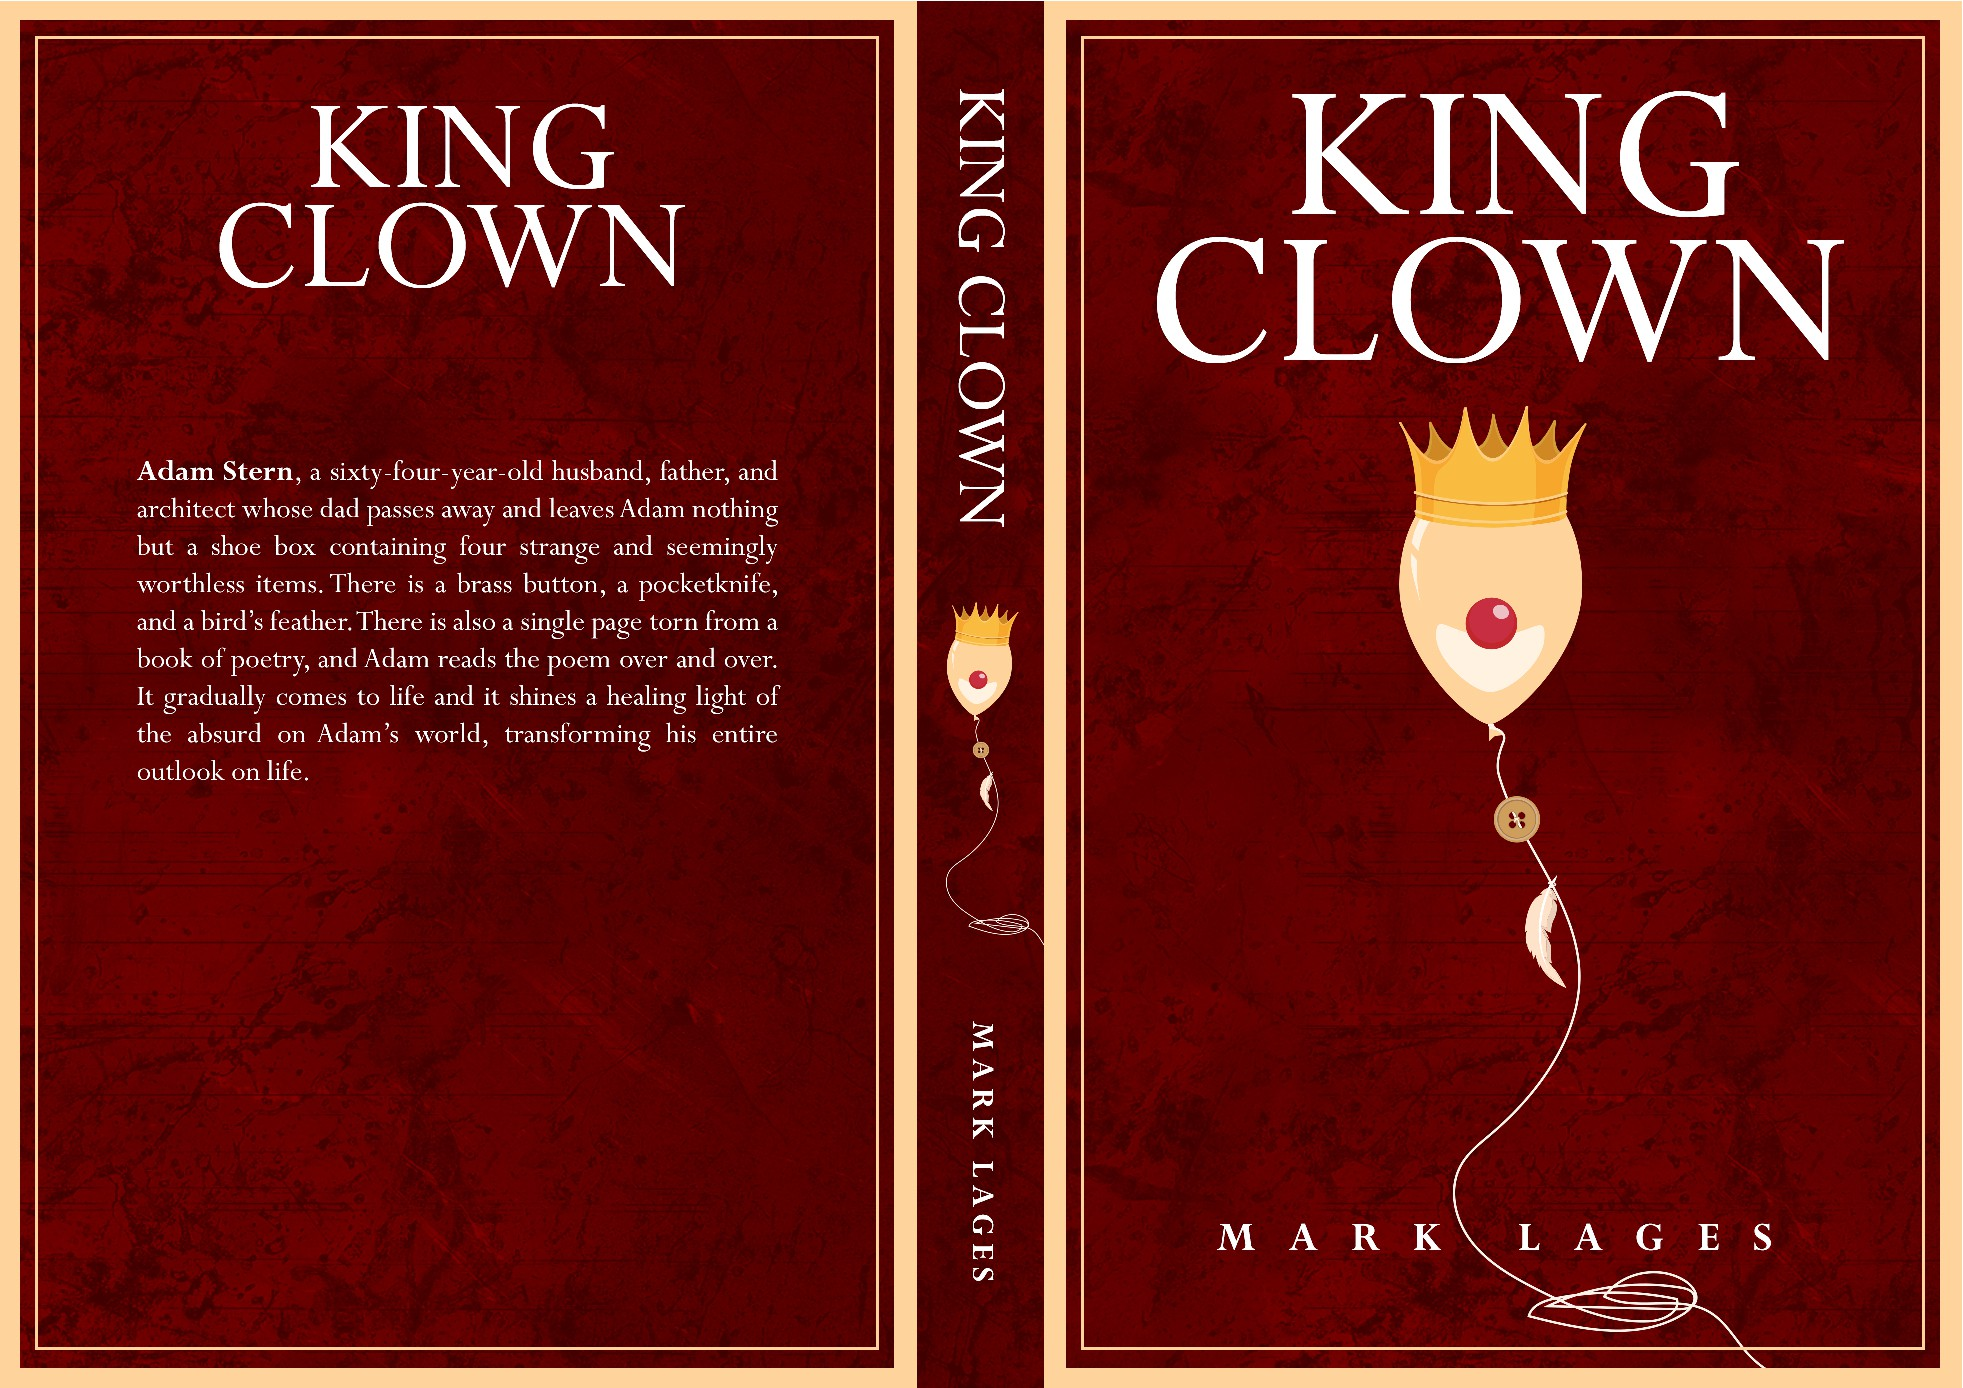 Cover for fiction novel about clowns